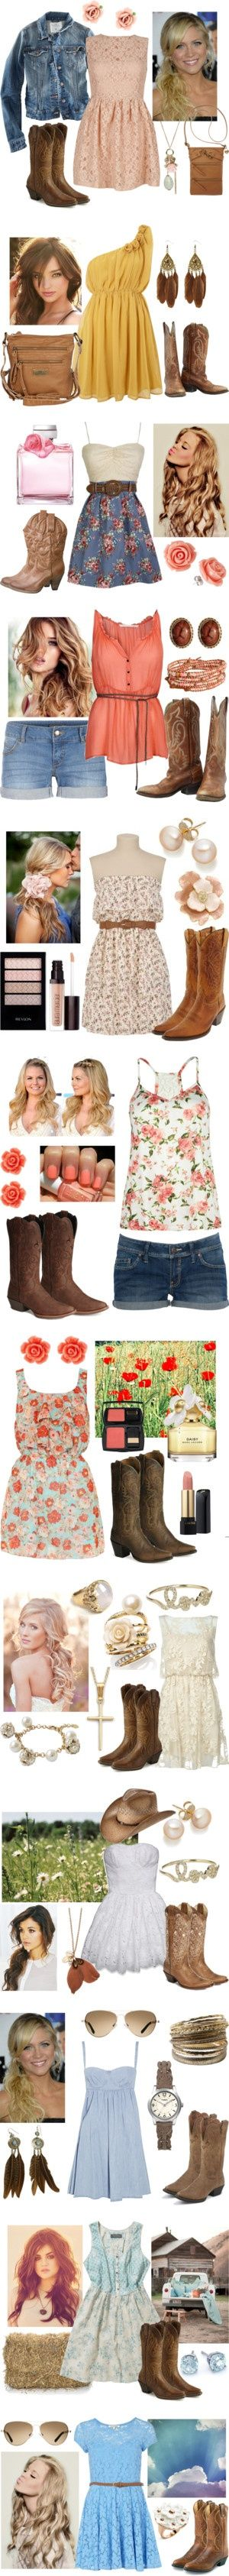 Clothes Outift for • teens • movies • girls • women •. summer • fall • spring • winter • outfit ideas • dates • parties Polyvore :) Catalina Christiano. Love all of these but one thing...the boots! Just because ur country doesnt mean u have to go with boots. Yuck